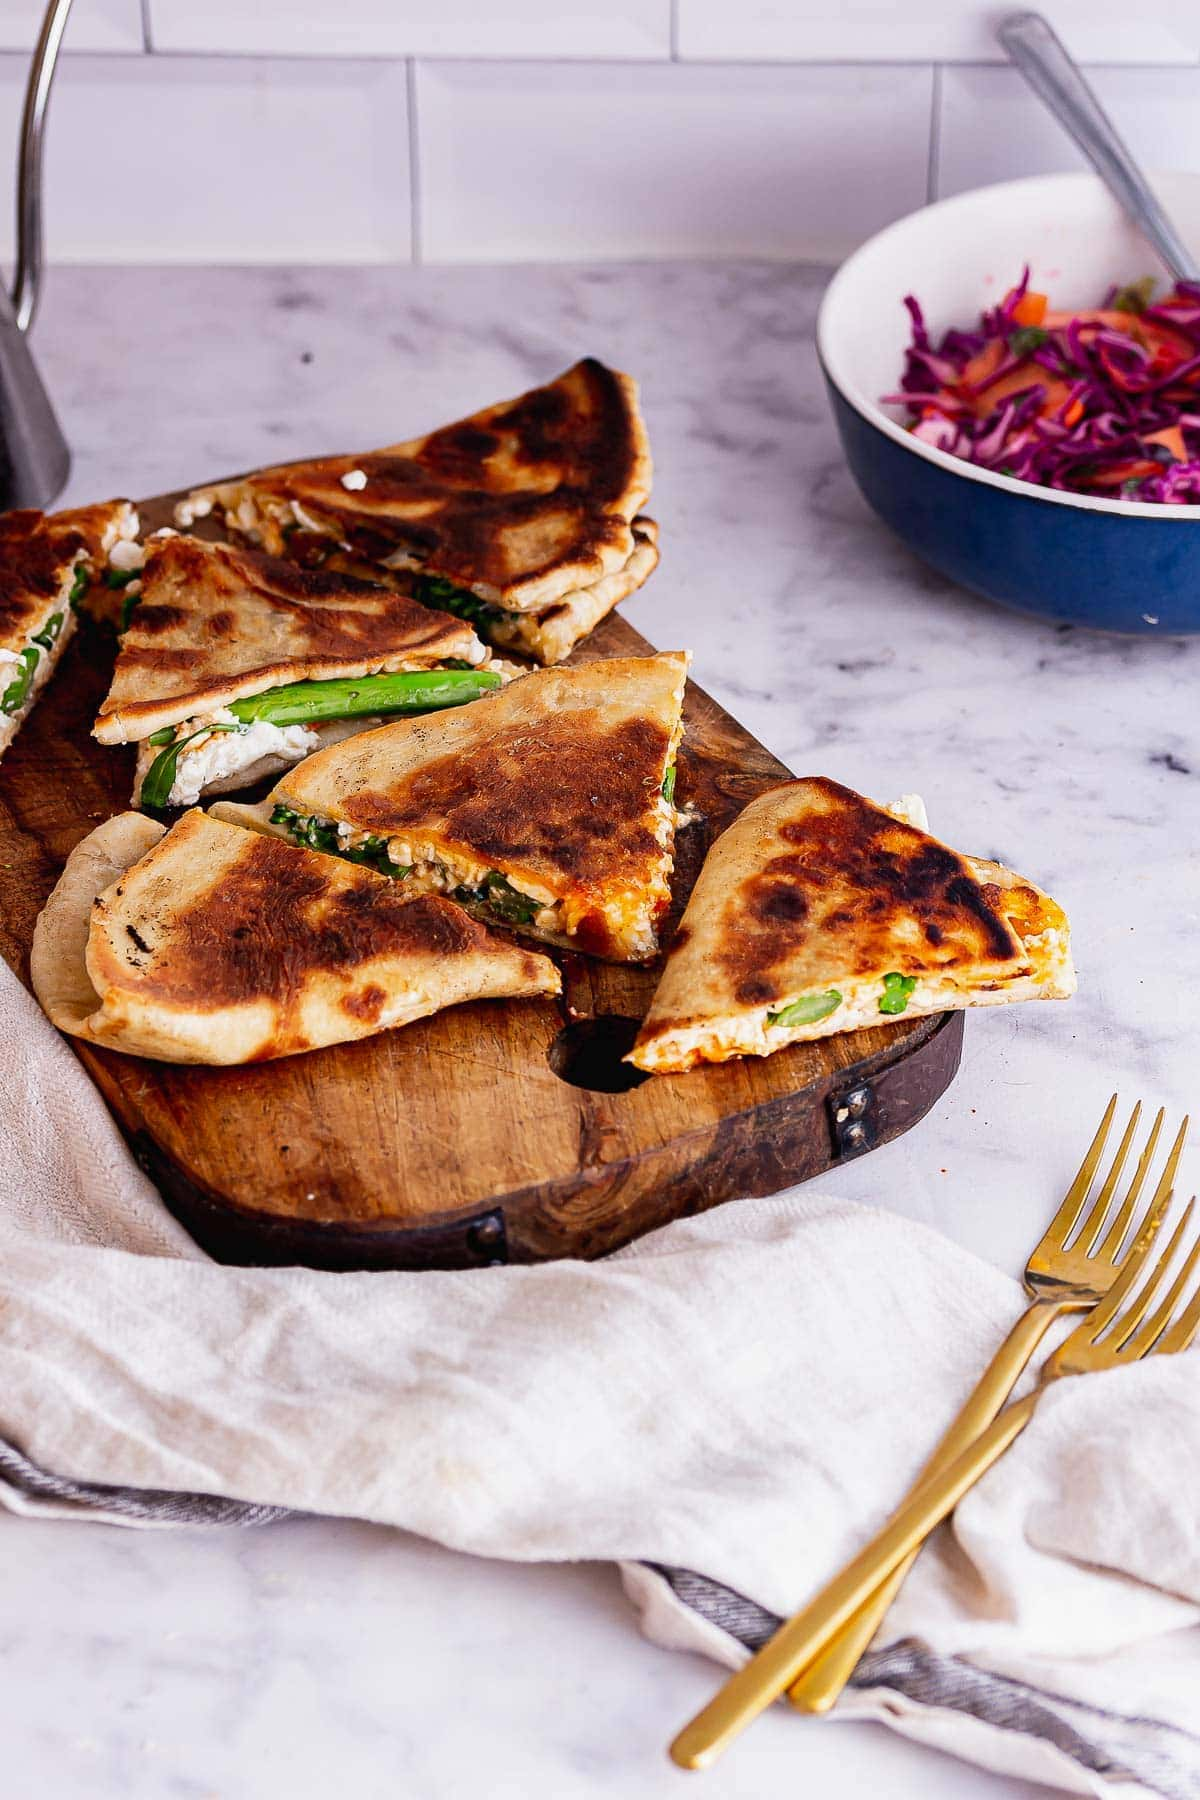 Feta flatbreads on a chopping board with a cloth and gold forks